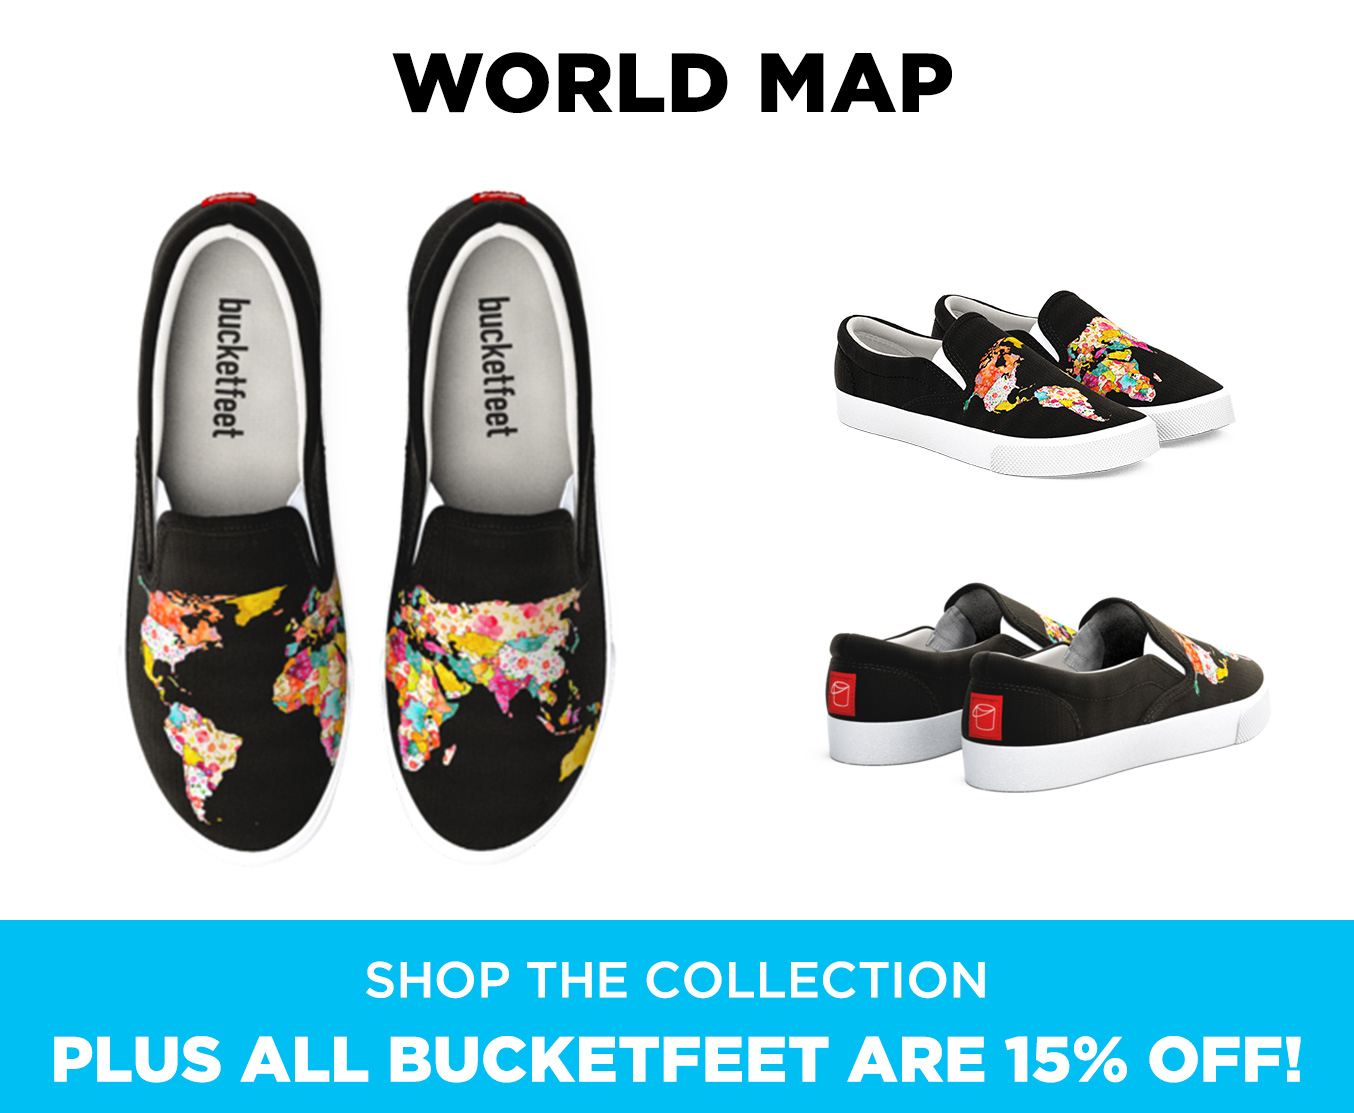 3be66dba1fc6 Bucketfeet  Meet the artist behind World Map. 🌍